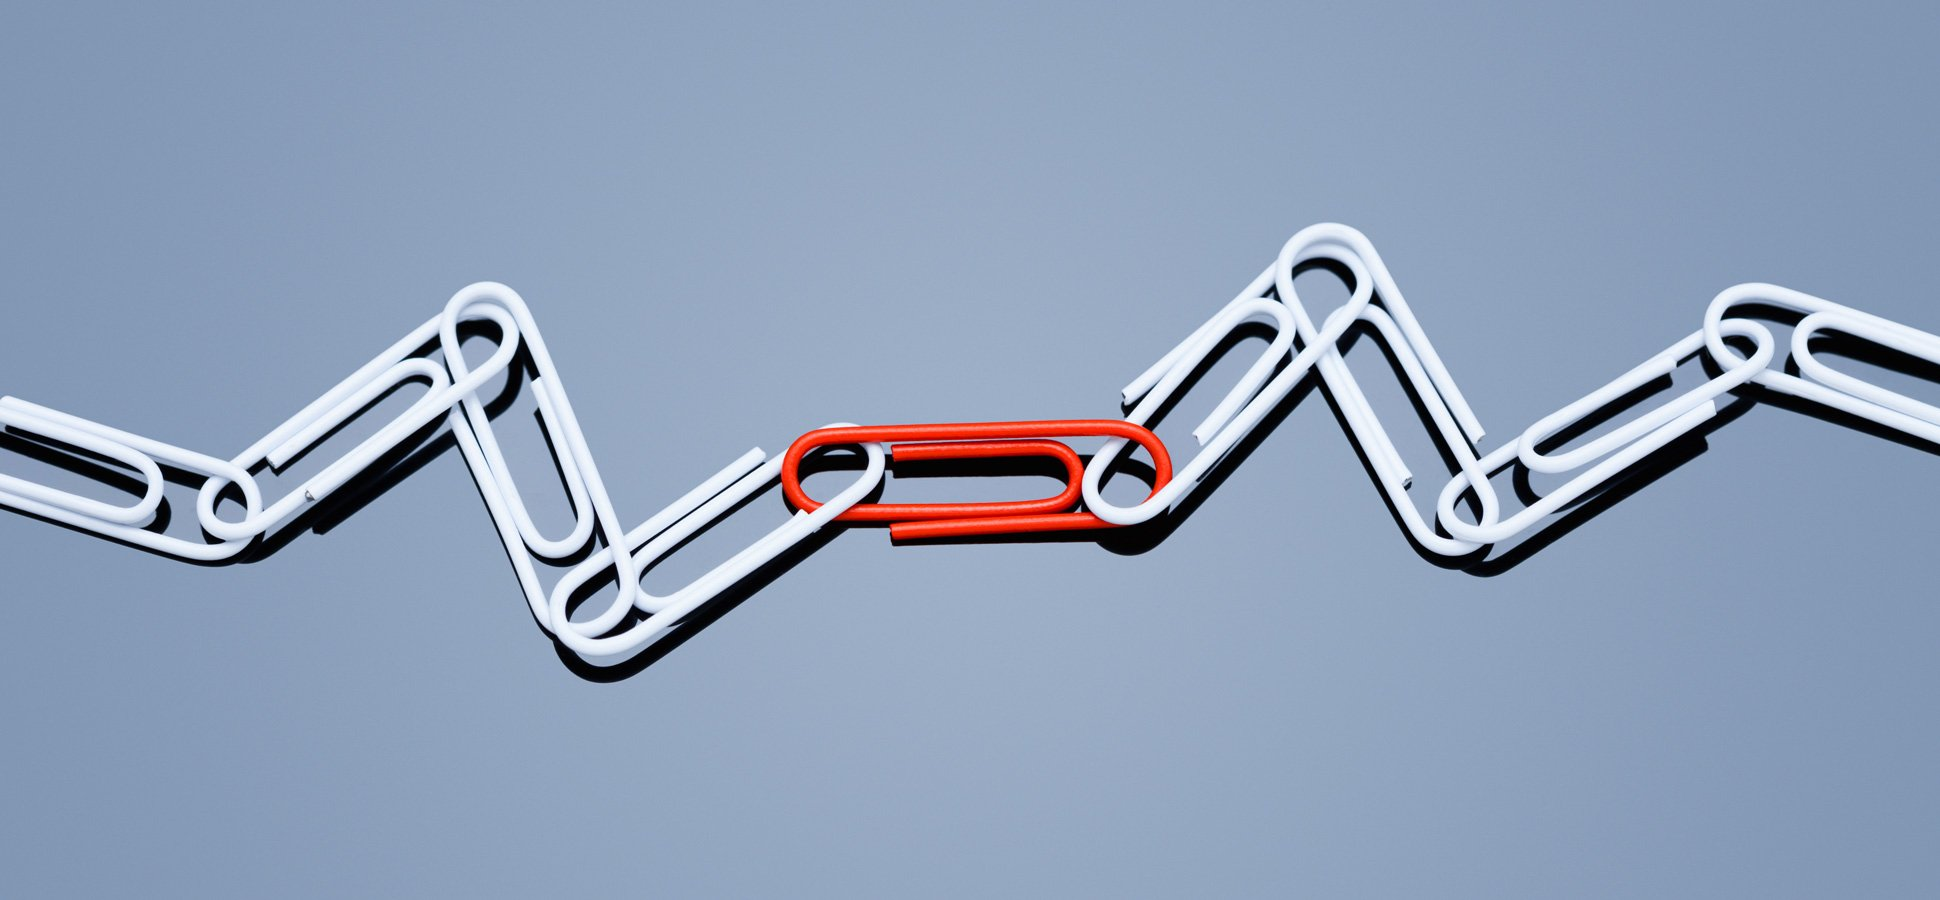 paperclips-chain-teamwork_1940x900_33941